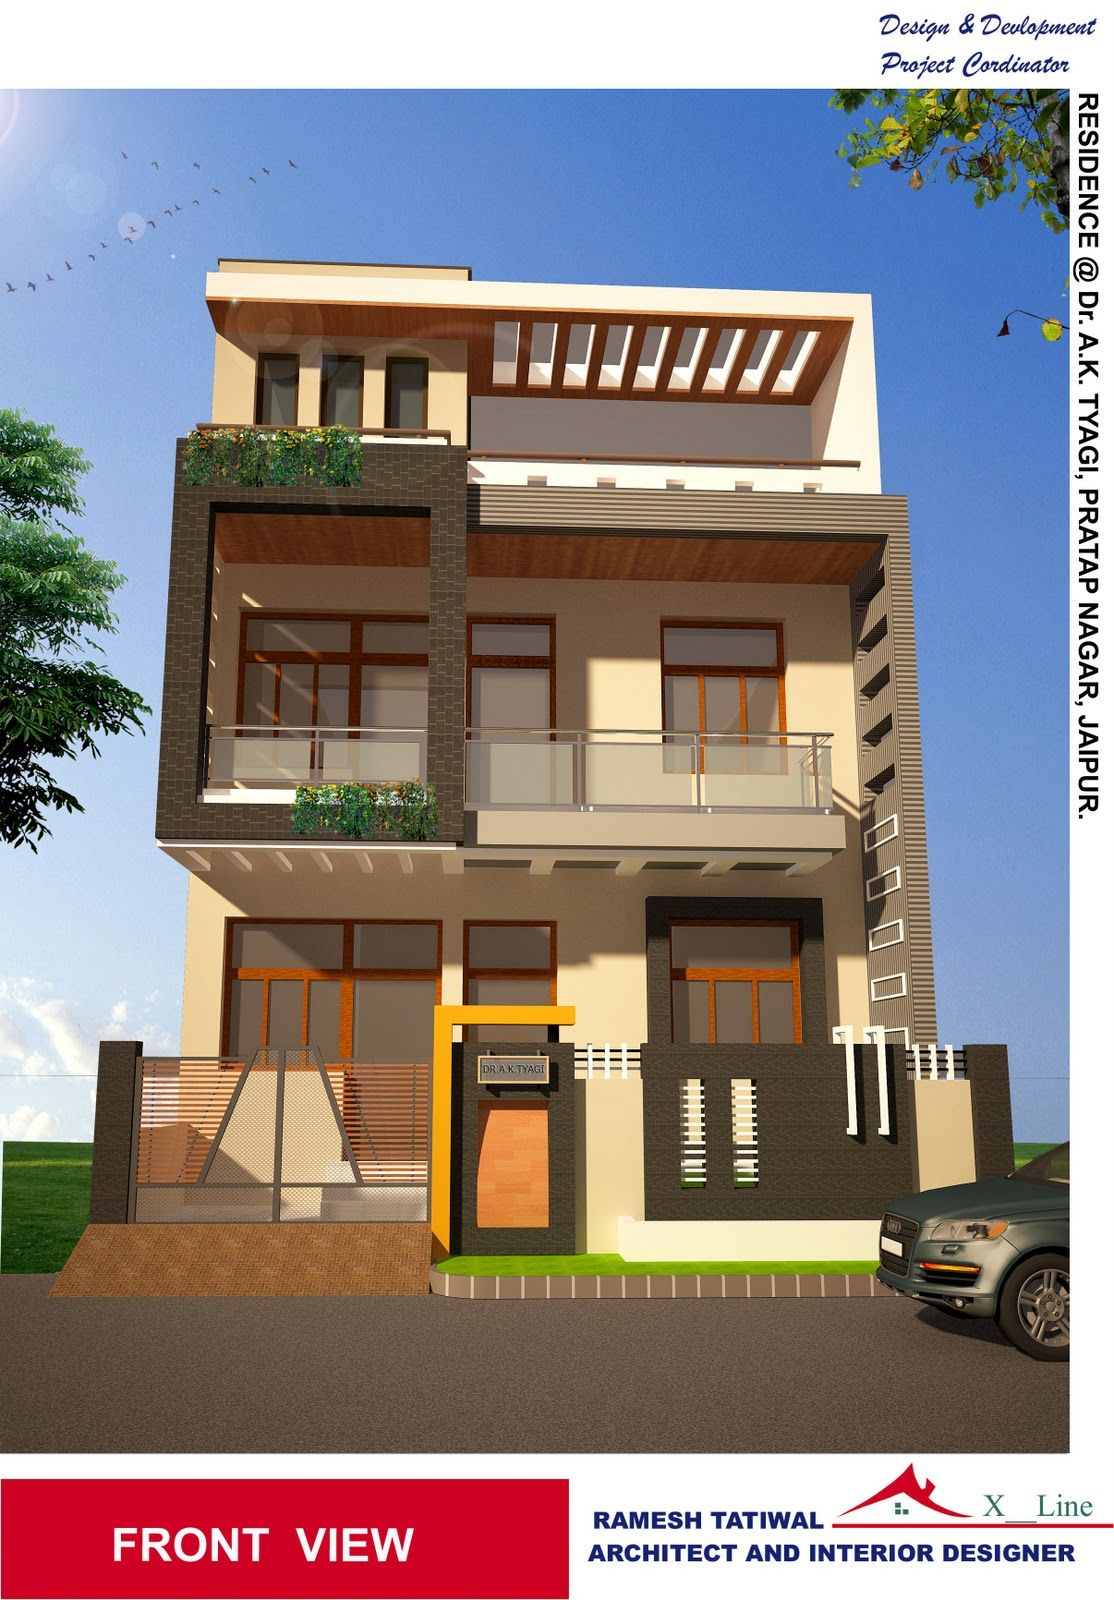 Housedesigns Modern Indian Home Architecture Design From: indian house structure design